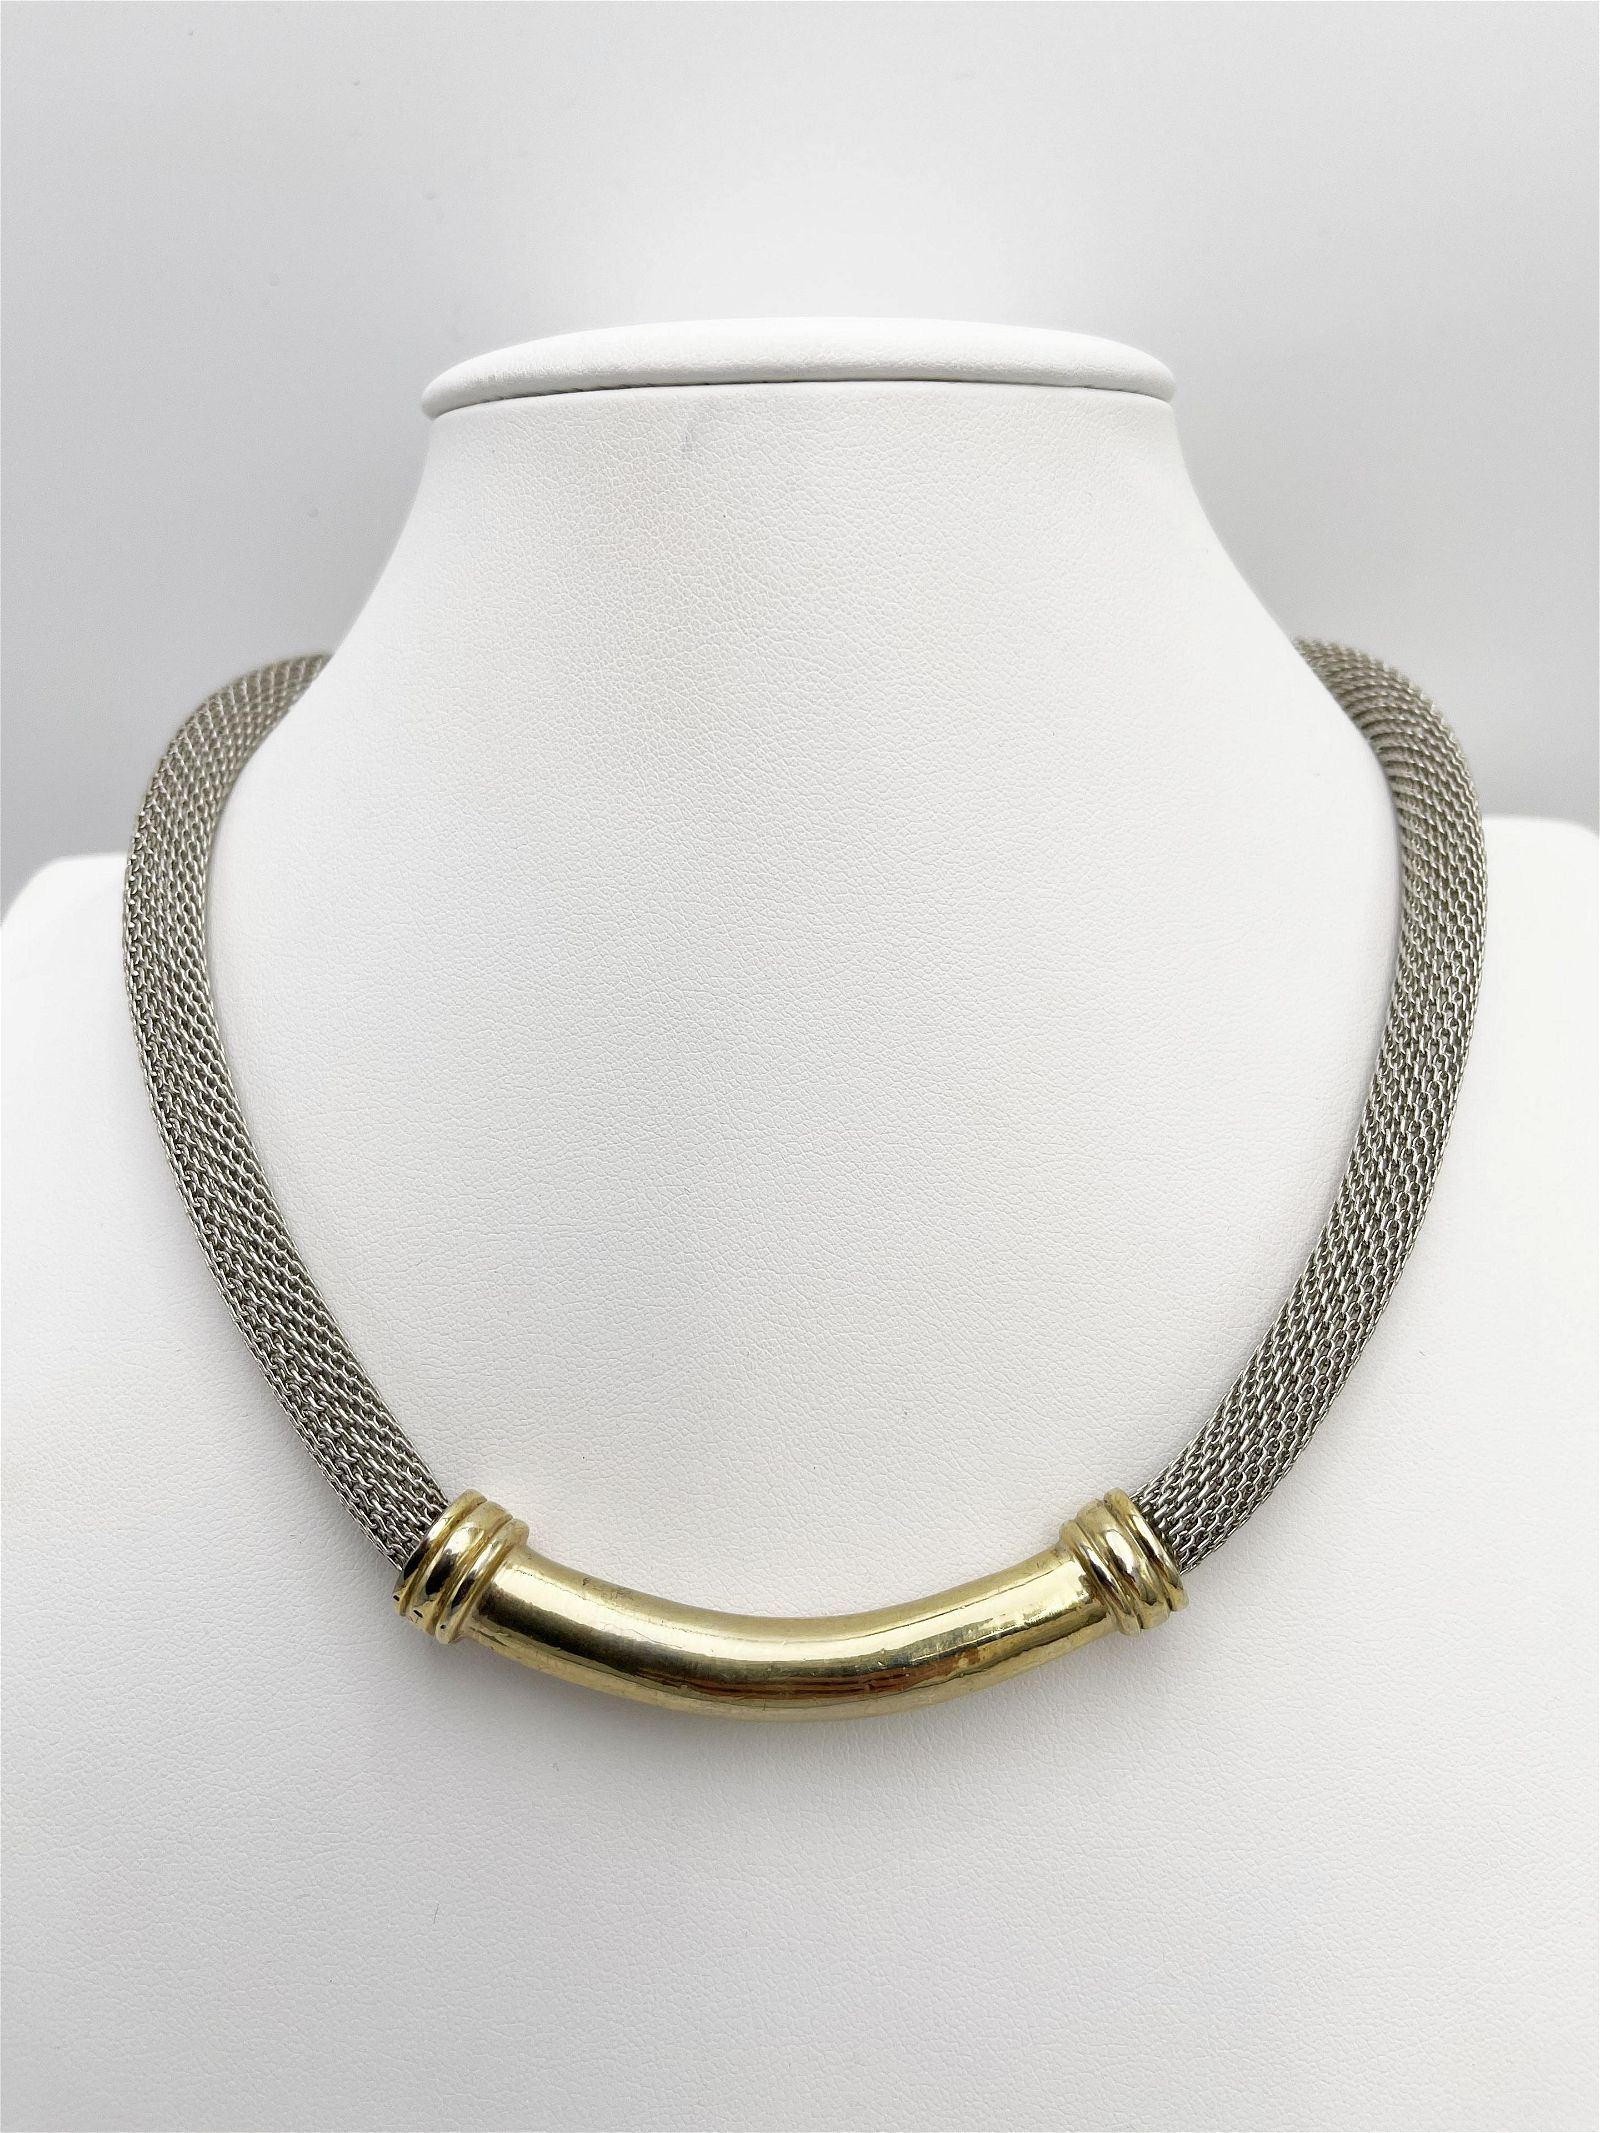 David Yurman-style Gold and Silver Tone Necklace with